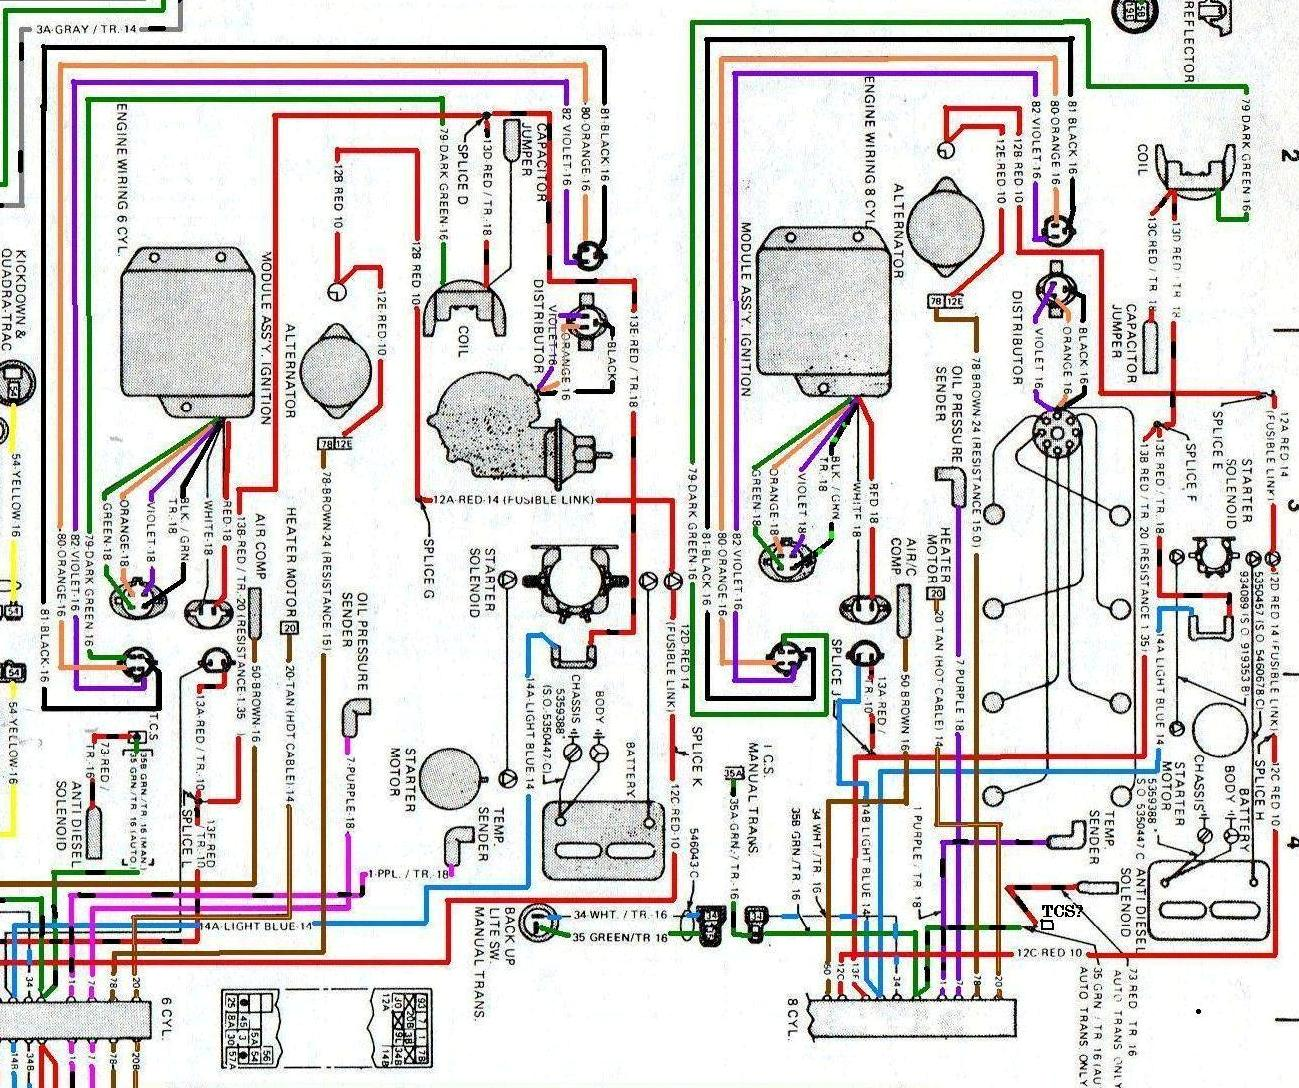 1977 cj5 wiring diagram wiring diagrams and schematics images of 1977 jeep cj5 wiring harness wire diagram alternator won 39 t charge battery ed wiring jeepforum